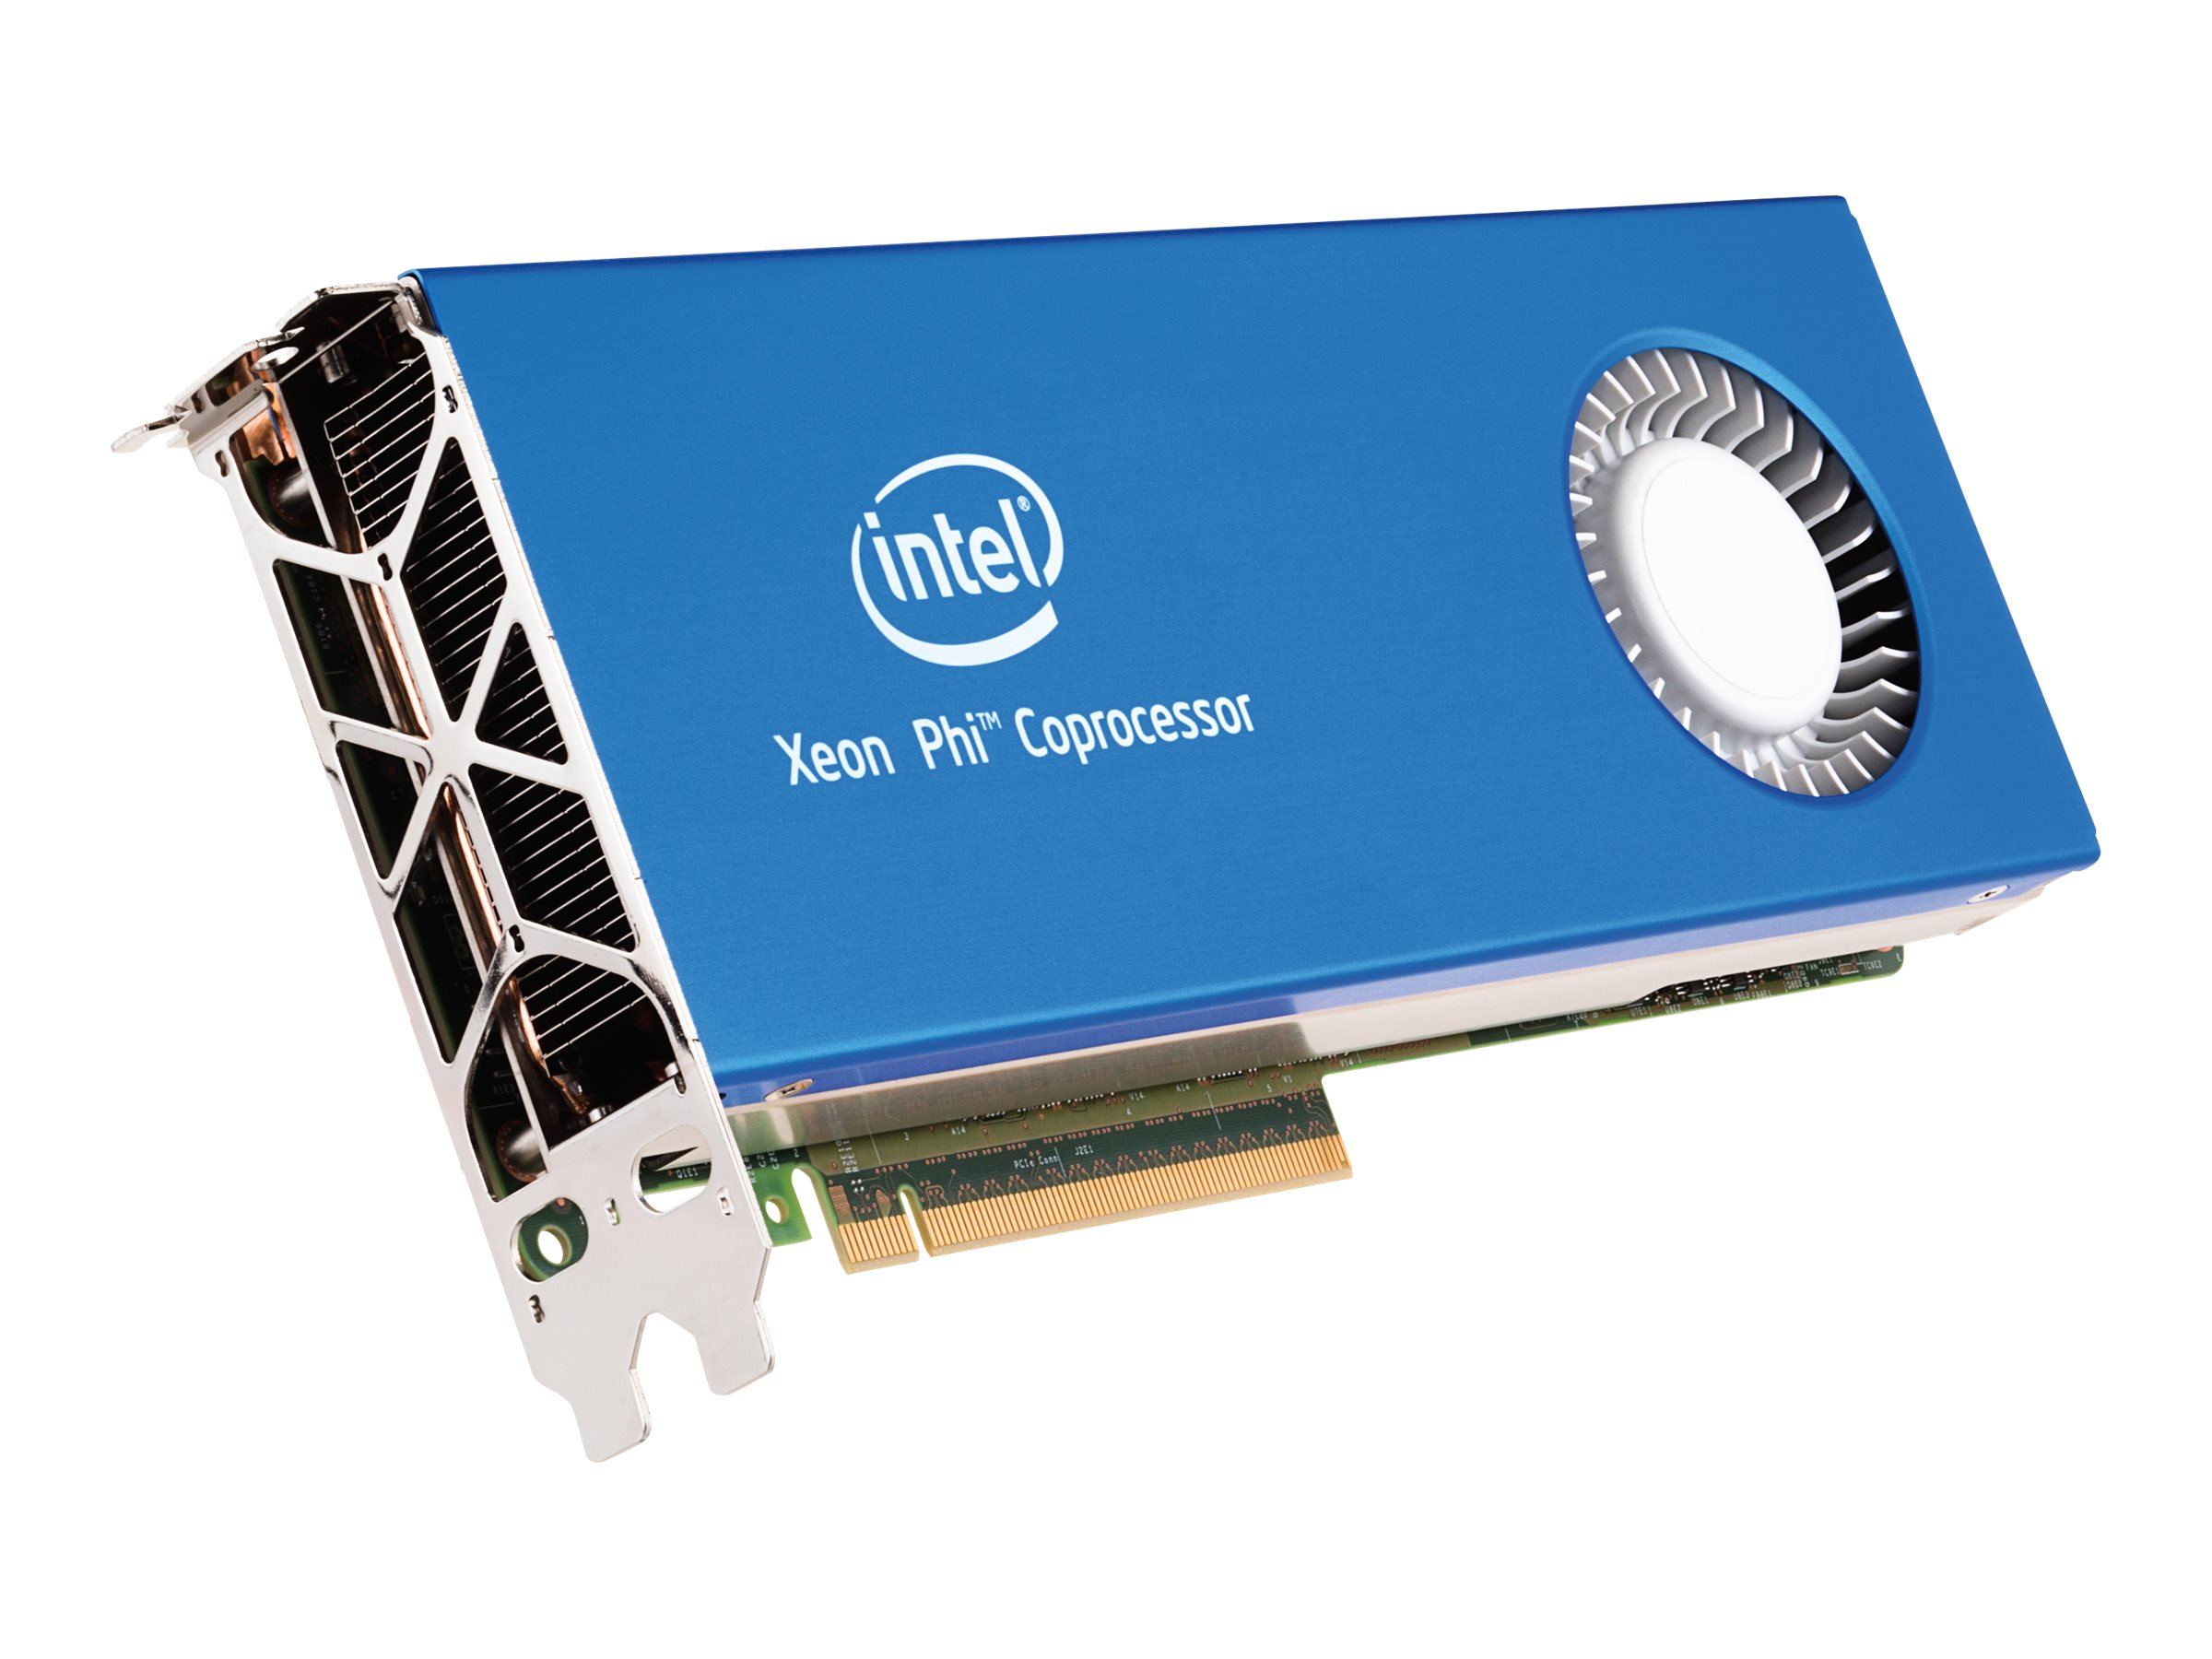 Intel Processor, Xeon Phi Coprocessor 60C 5120D 1.053GHz 30MB 245W, SC5120D, 16327411, Processor Upgrades